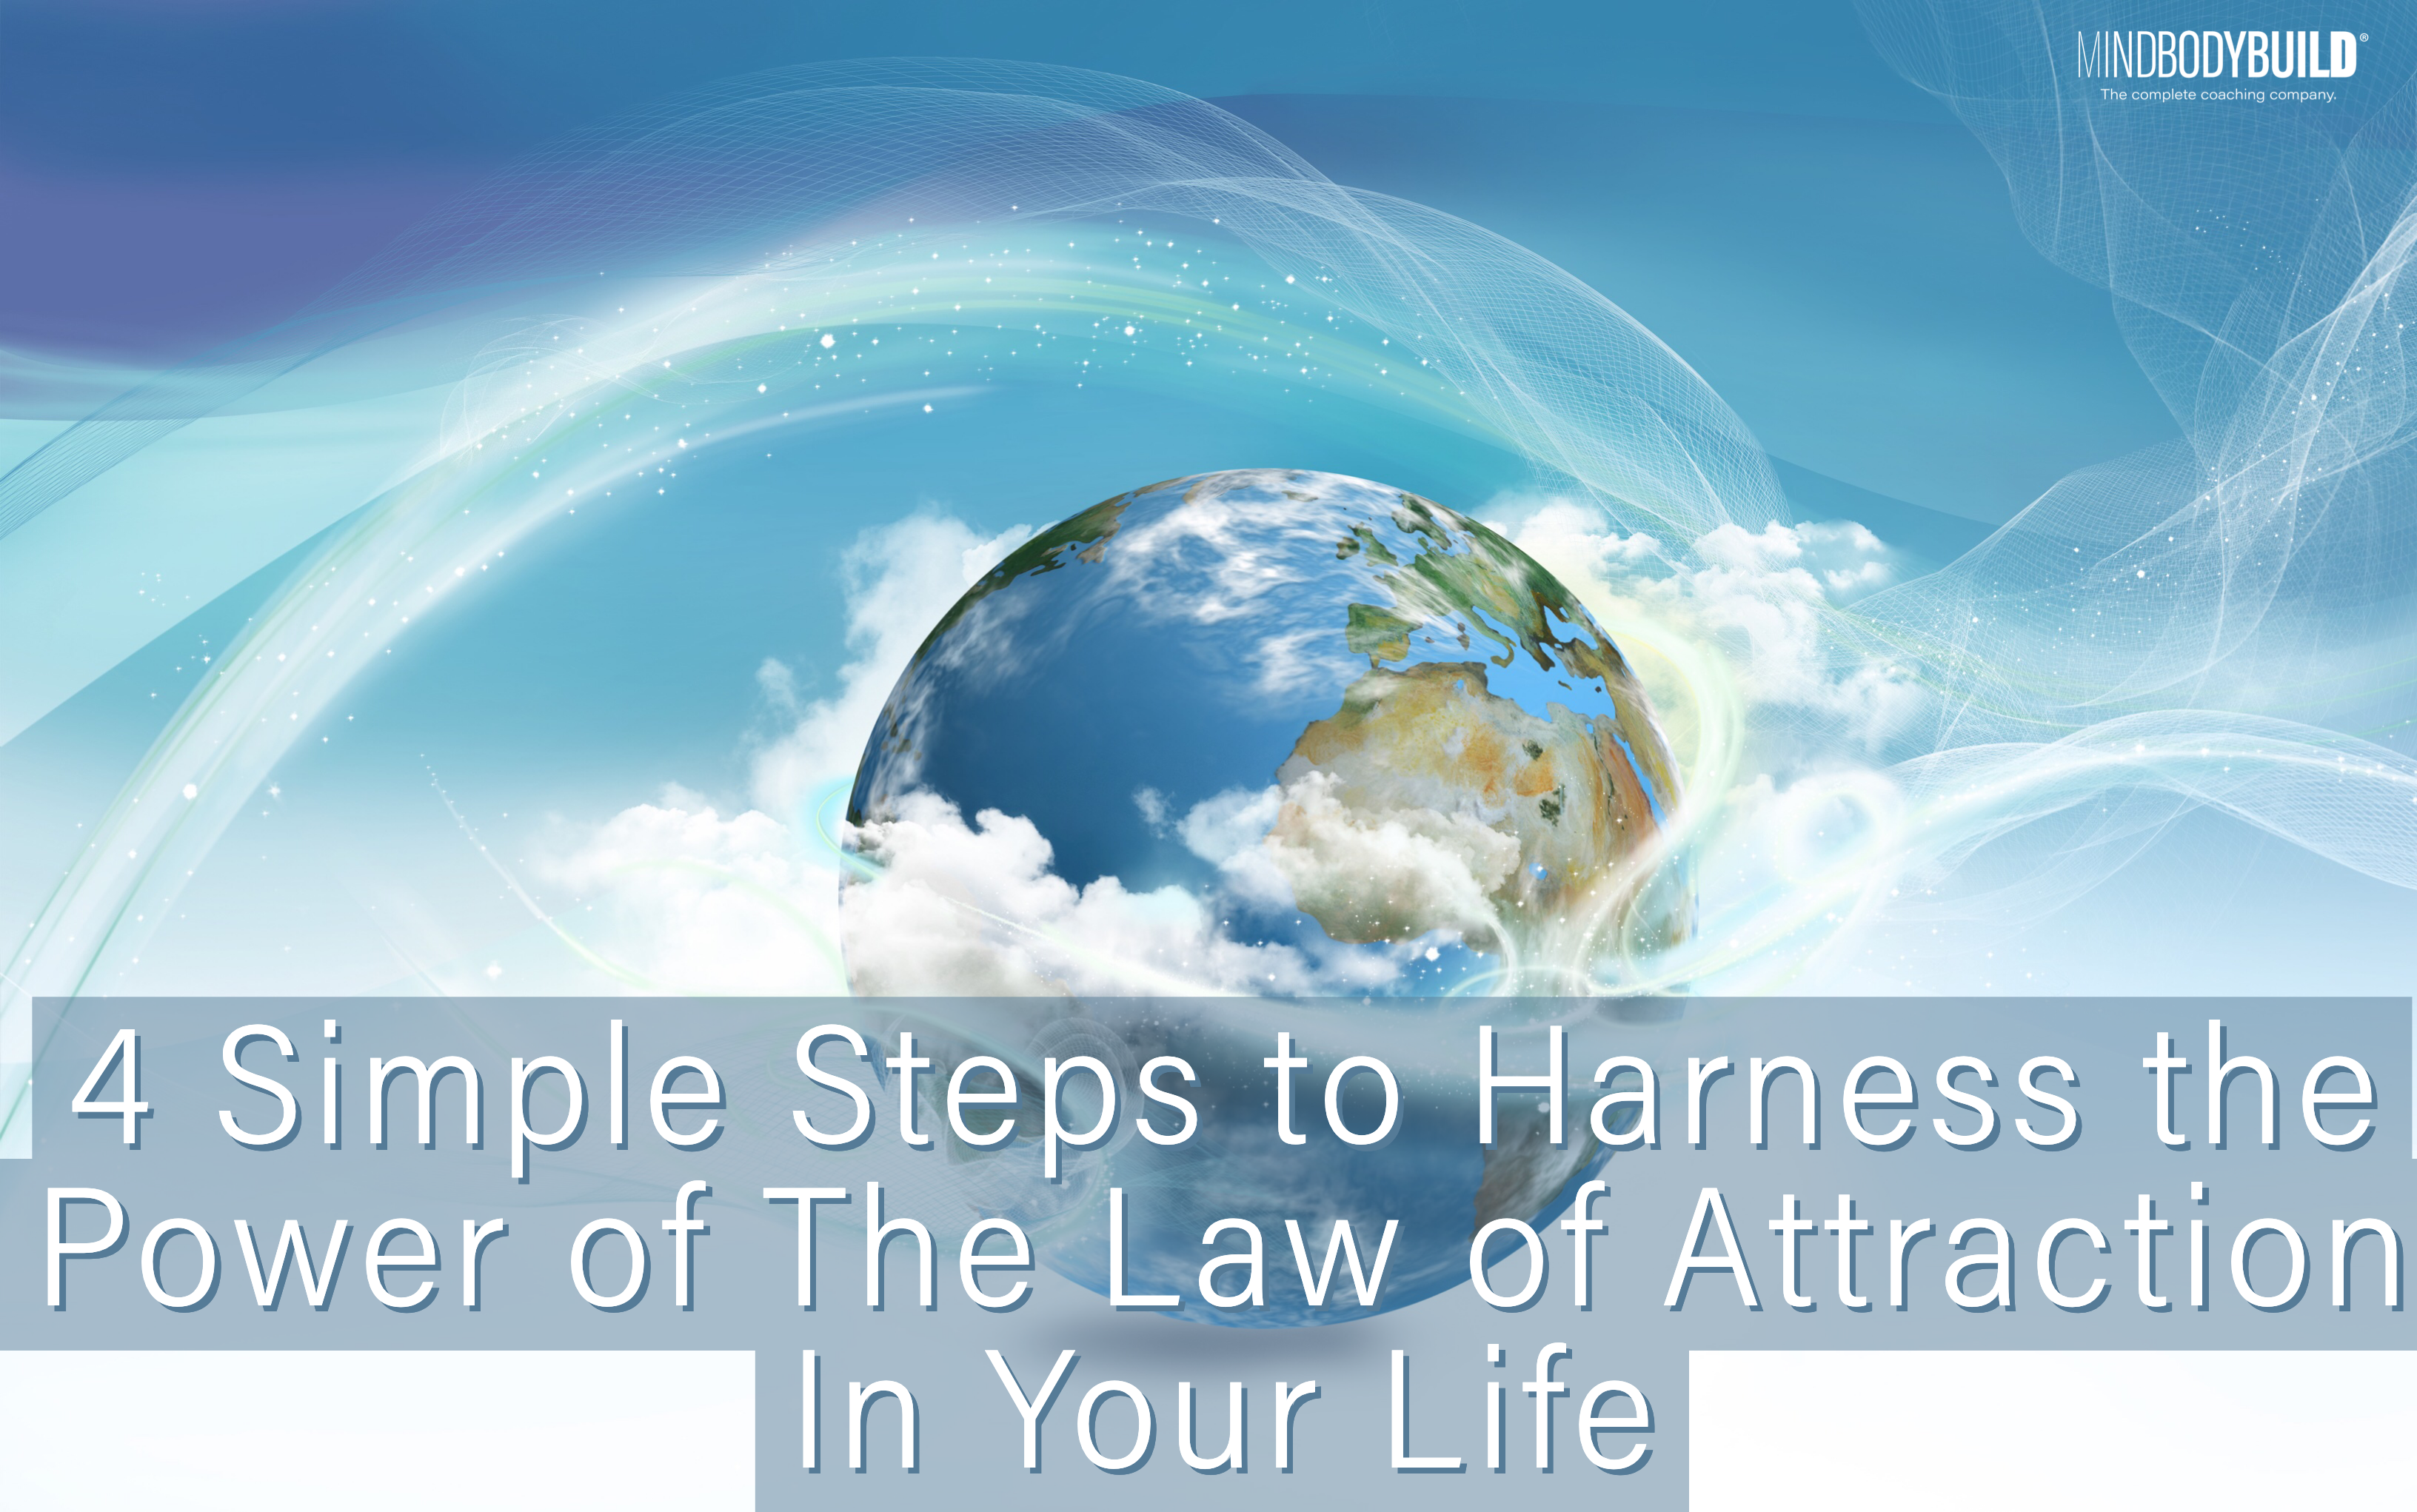 4 Simple Steps to Harness the Power of the Law of Attraction In Your Life